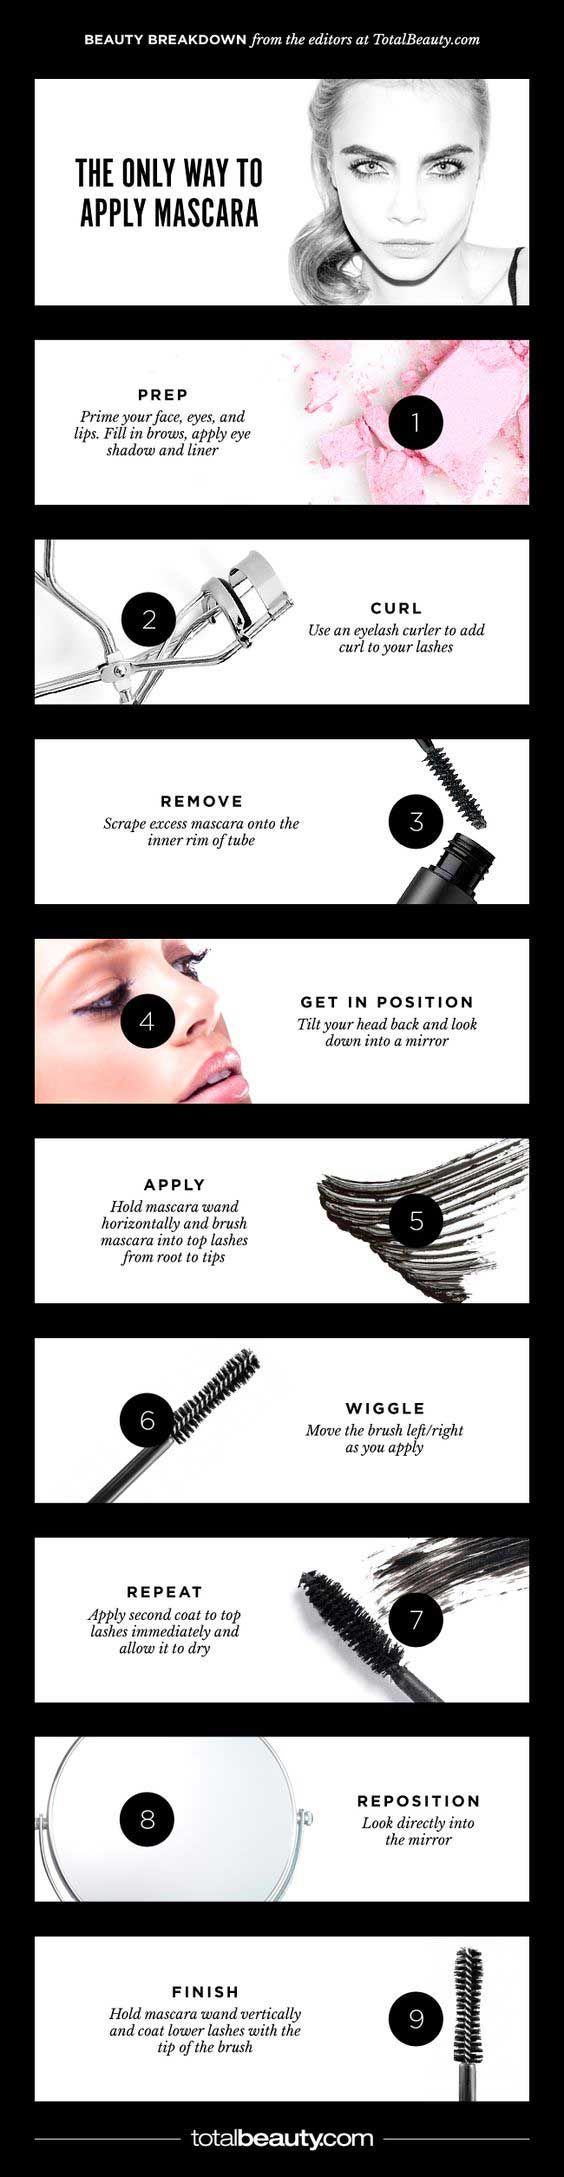 If you're looking for the best mascara tips to teach you how to apply mascara perfectly, you search ends here!